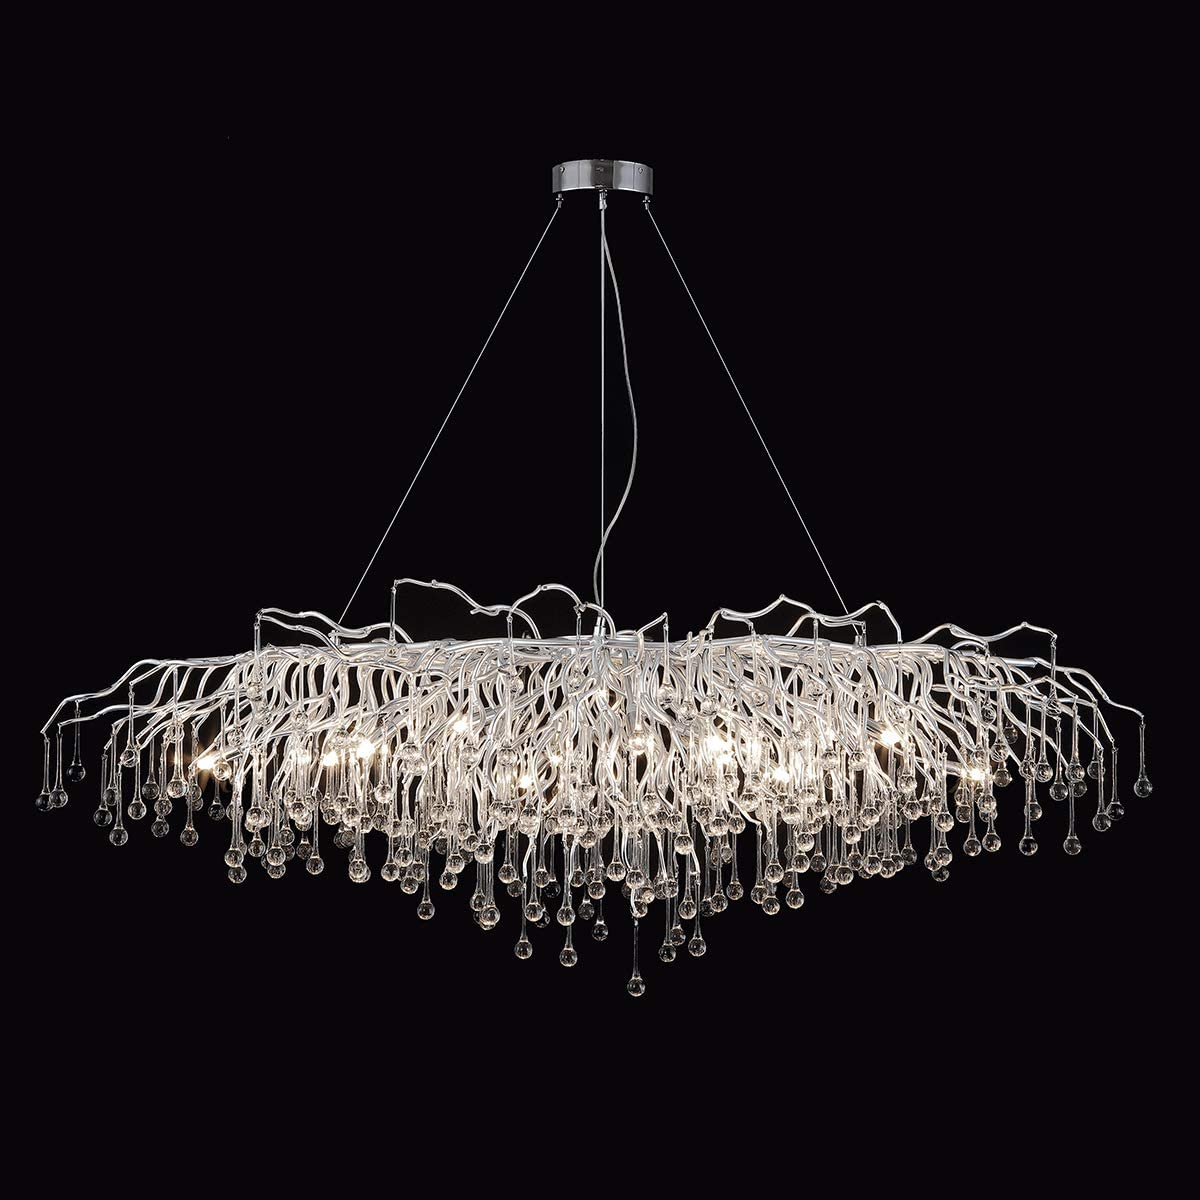 ANTILISHA Rectangle Chandelier for Dining Room Foyer Modern Crystal Chandeliers Lighting Large for High Ceilings Pendant Forest Rain Drops Linear Long Light Fixture Silver 57